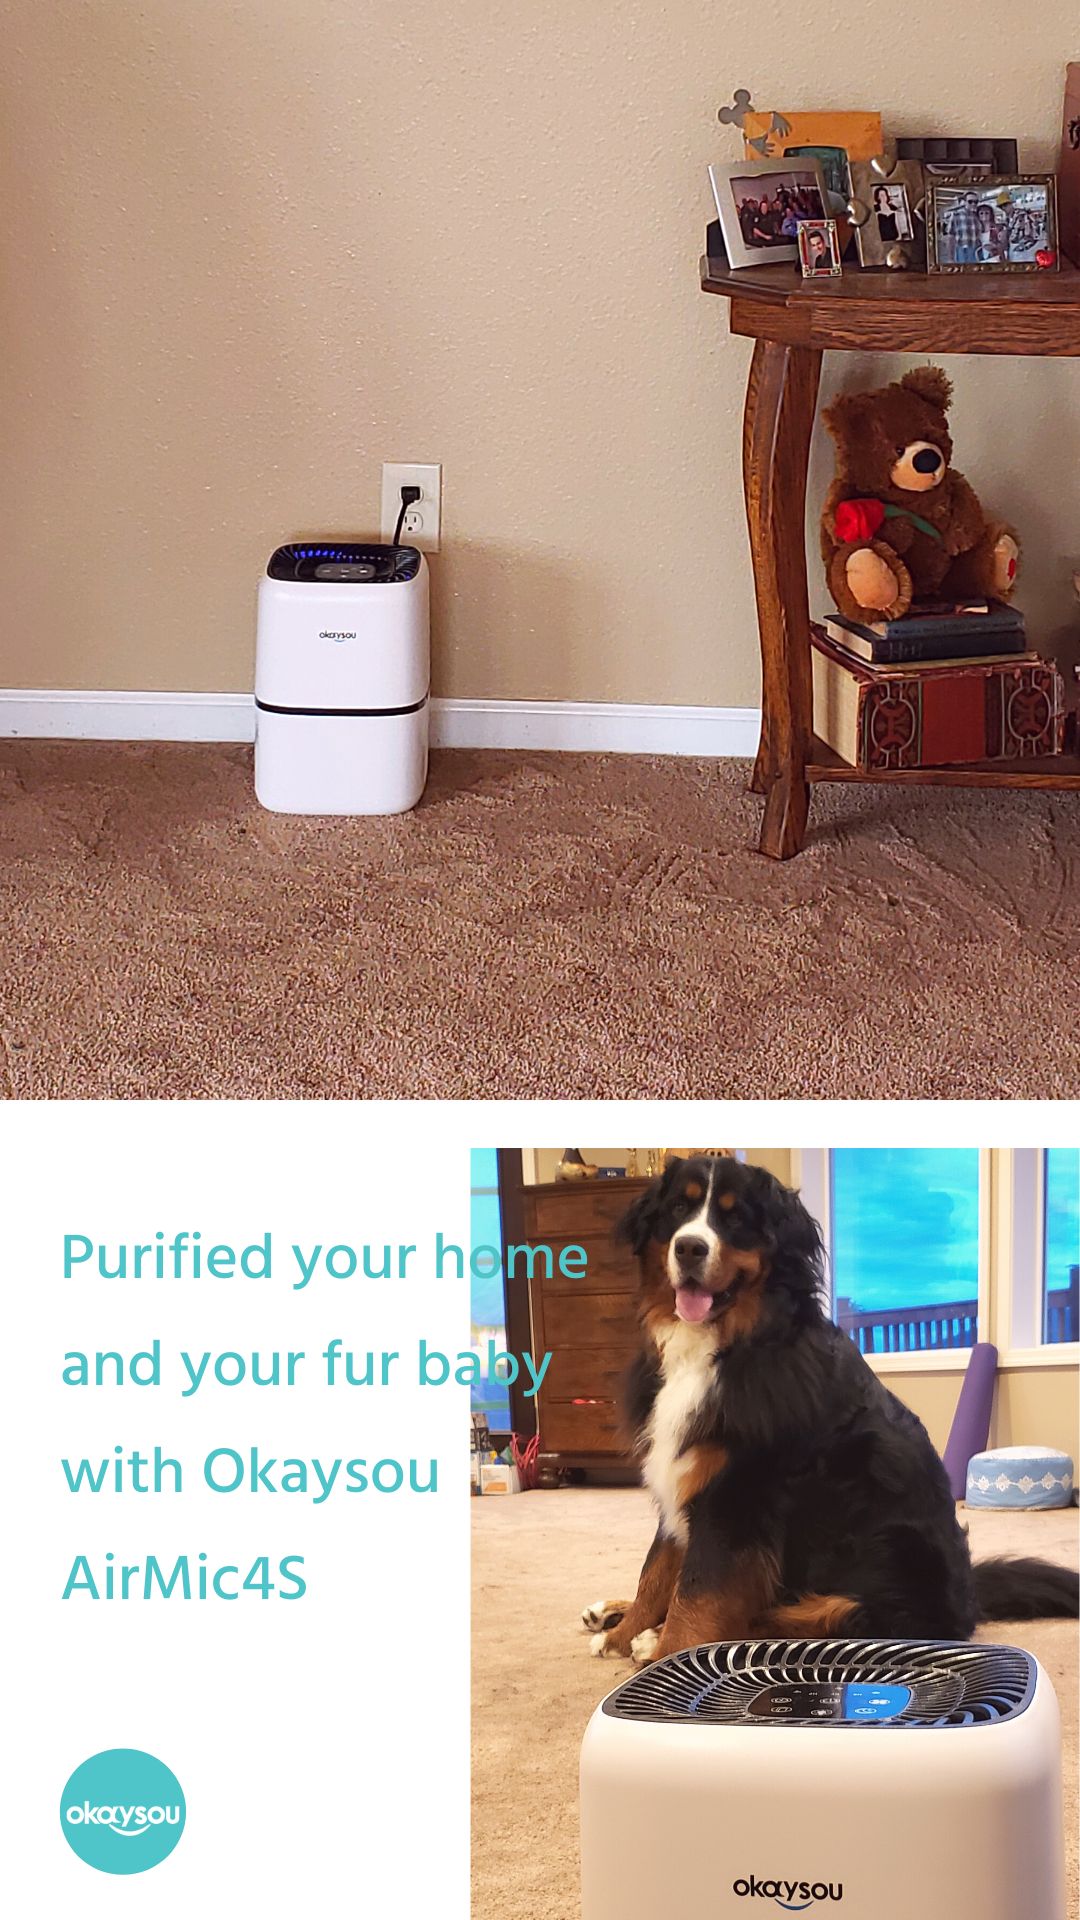 purifier filter cleaner air filters pet Allergen dog cat